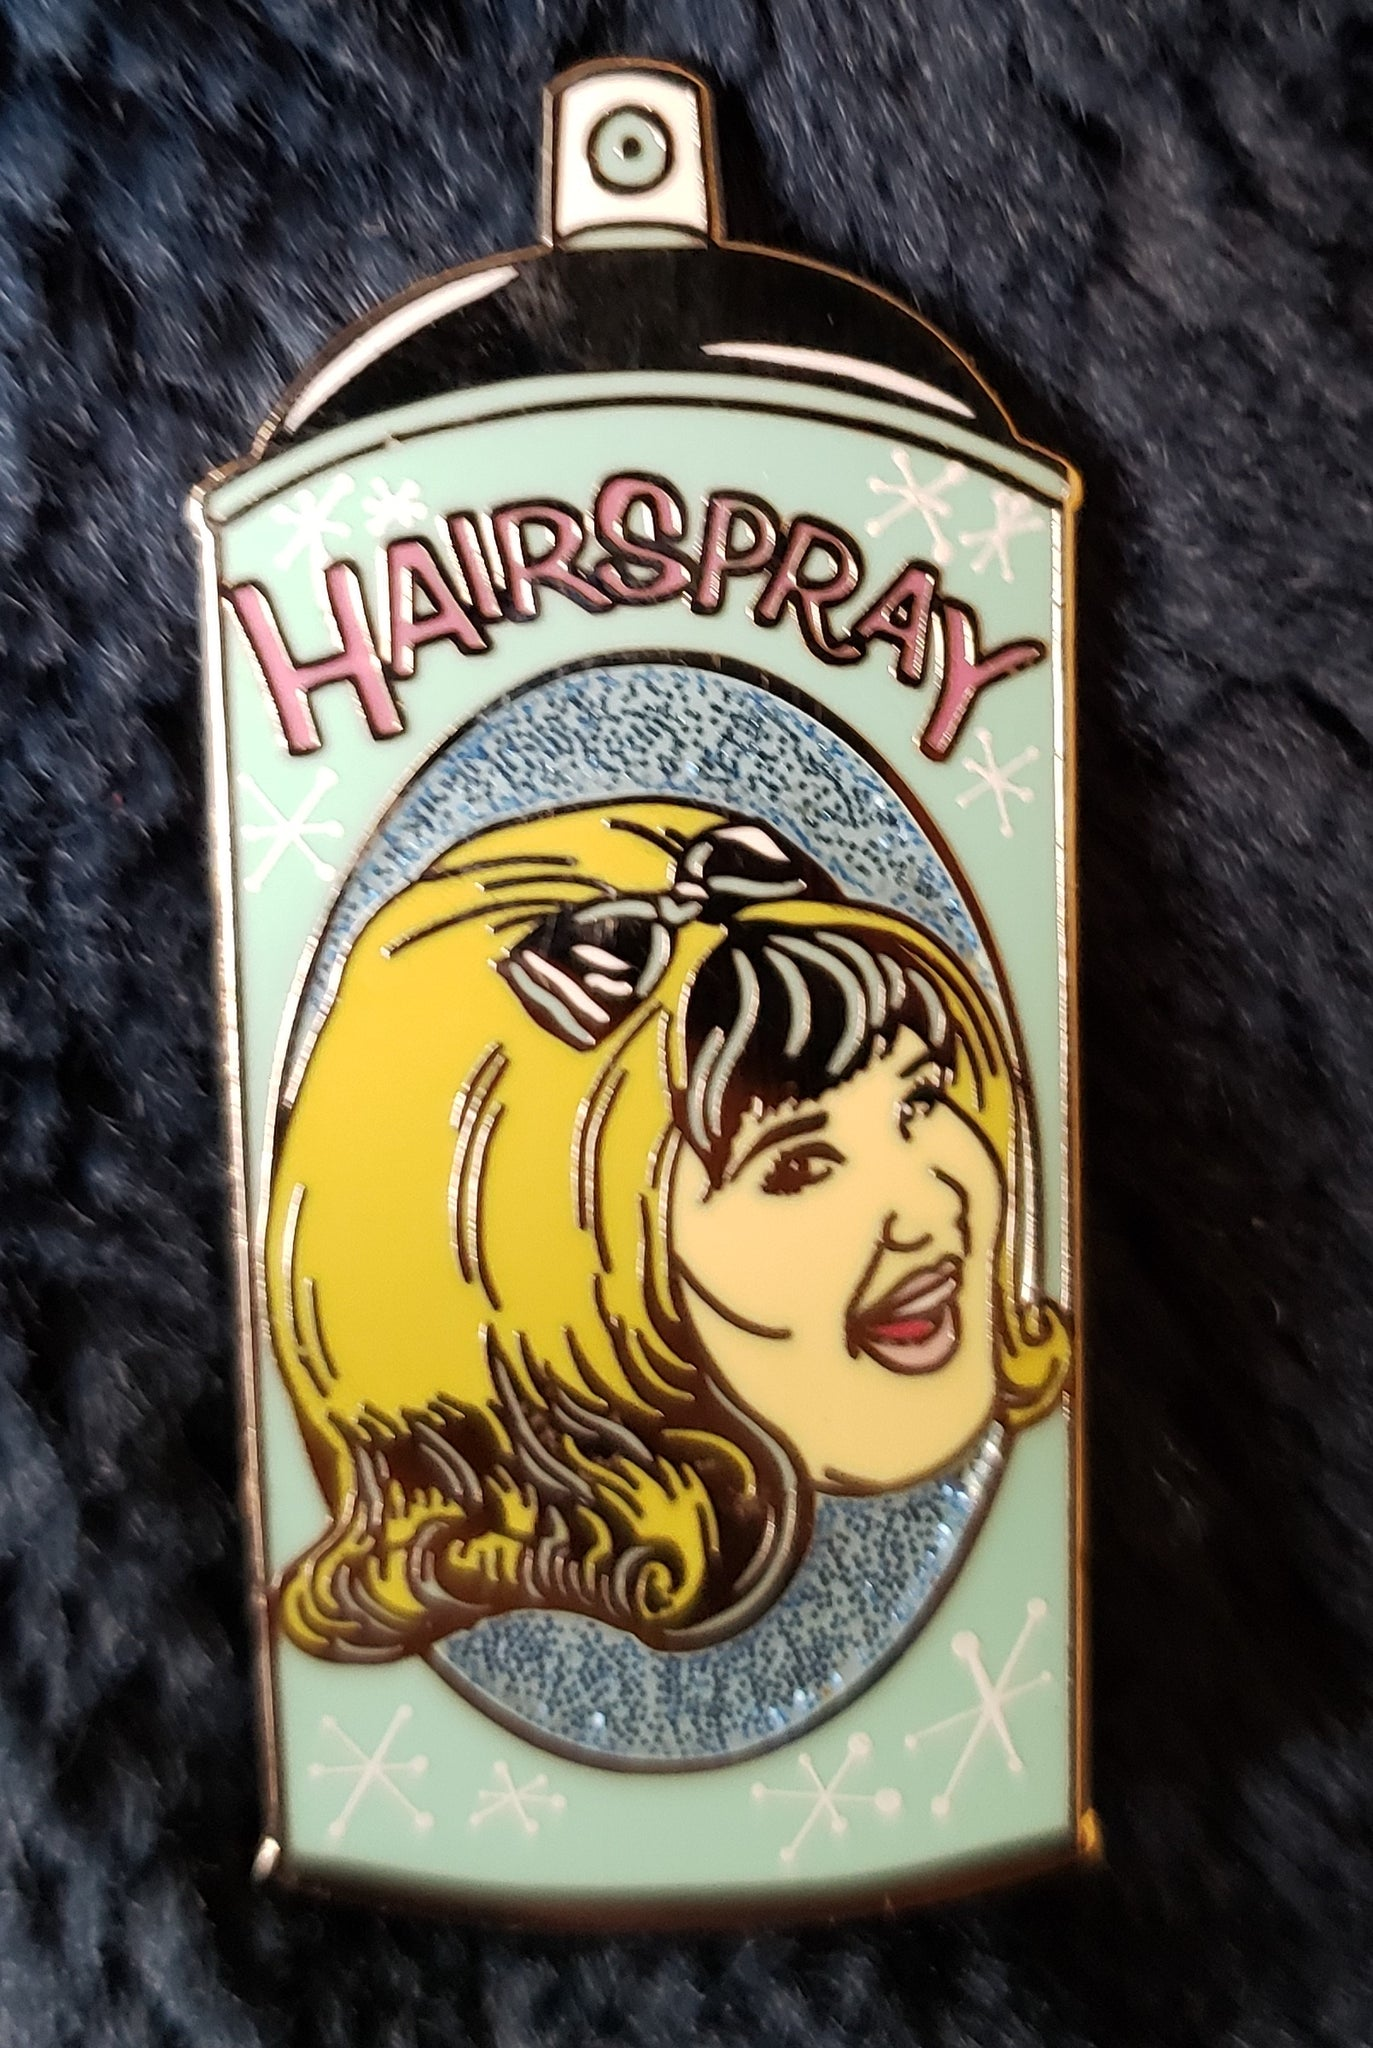 Hairspray Tracy